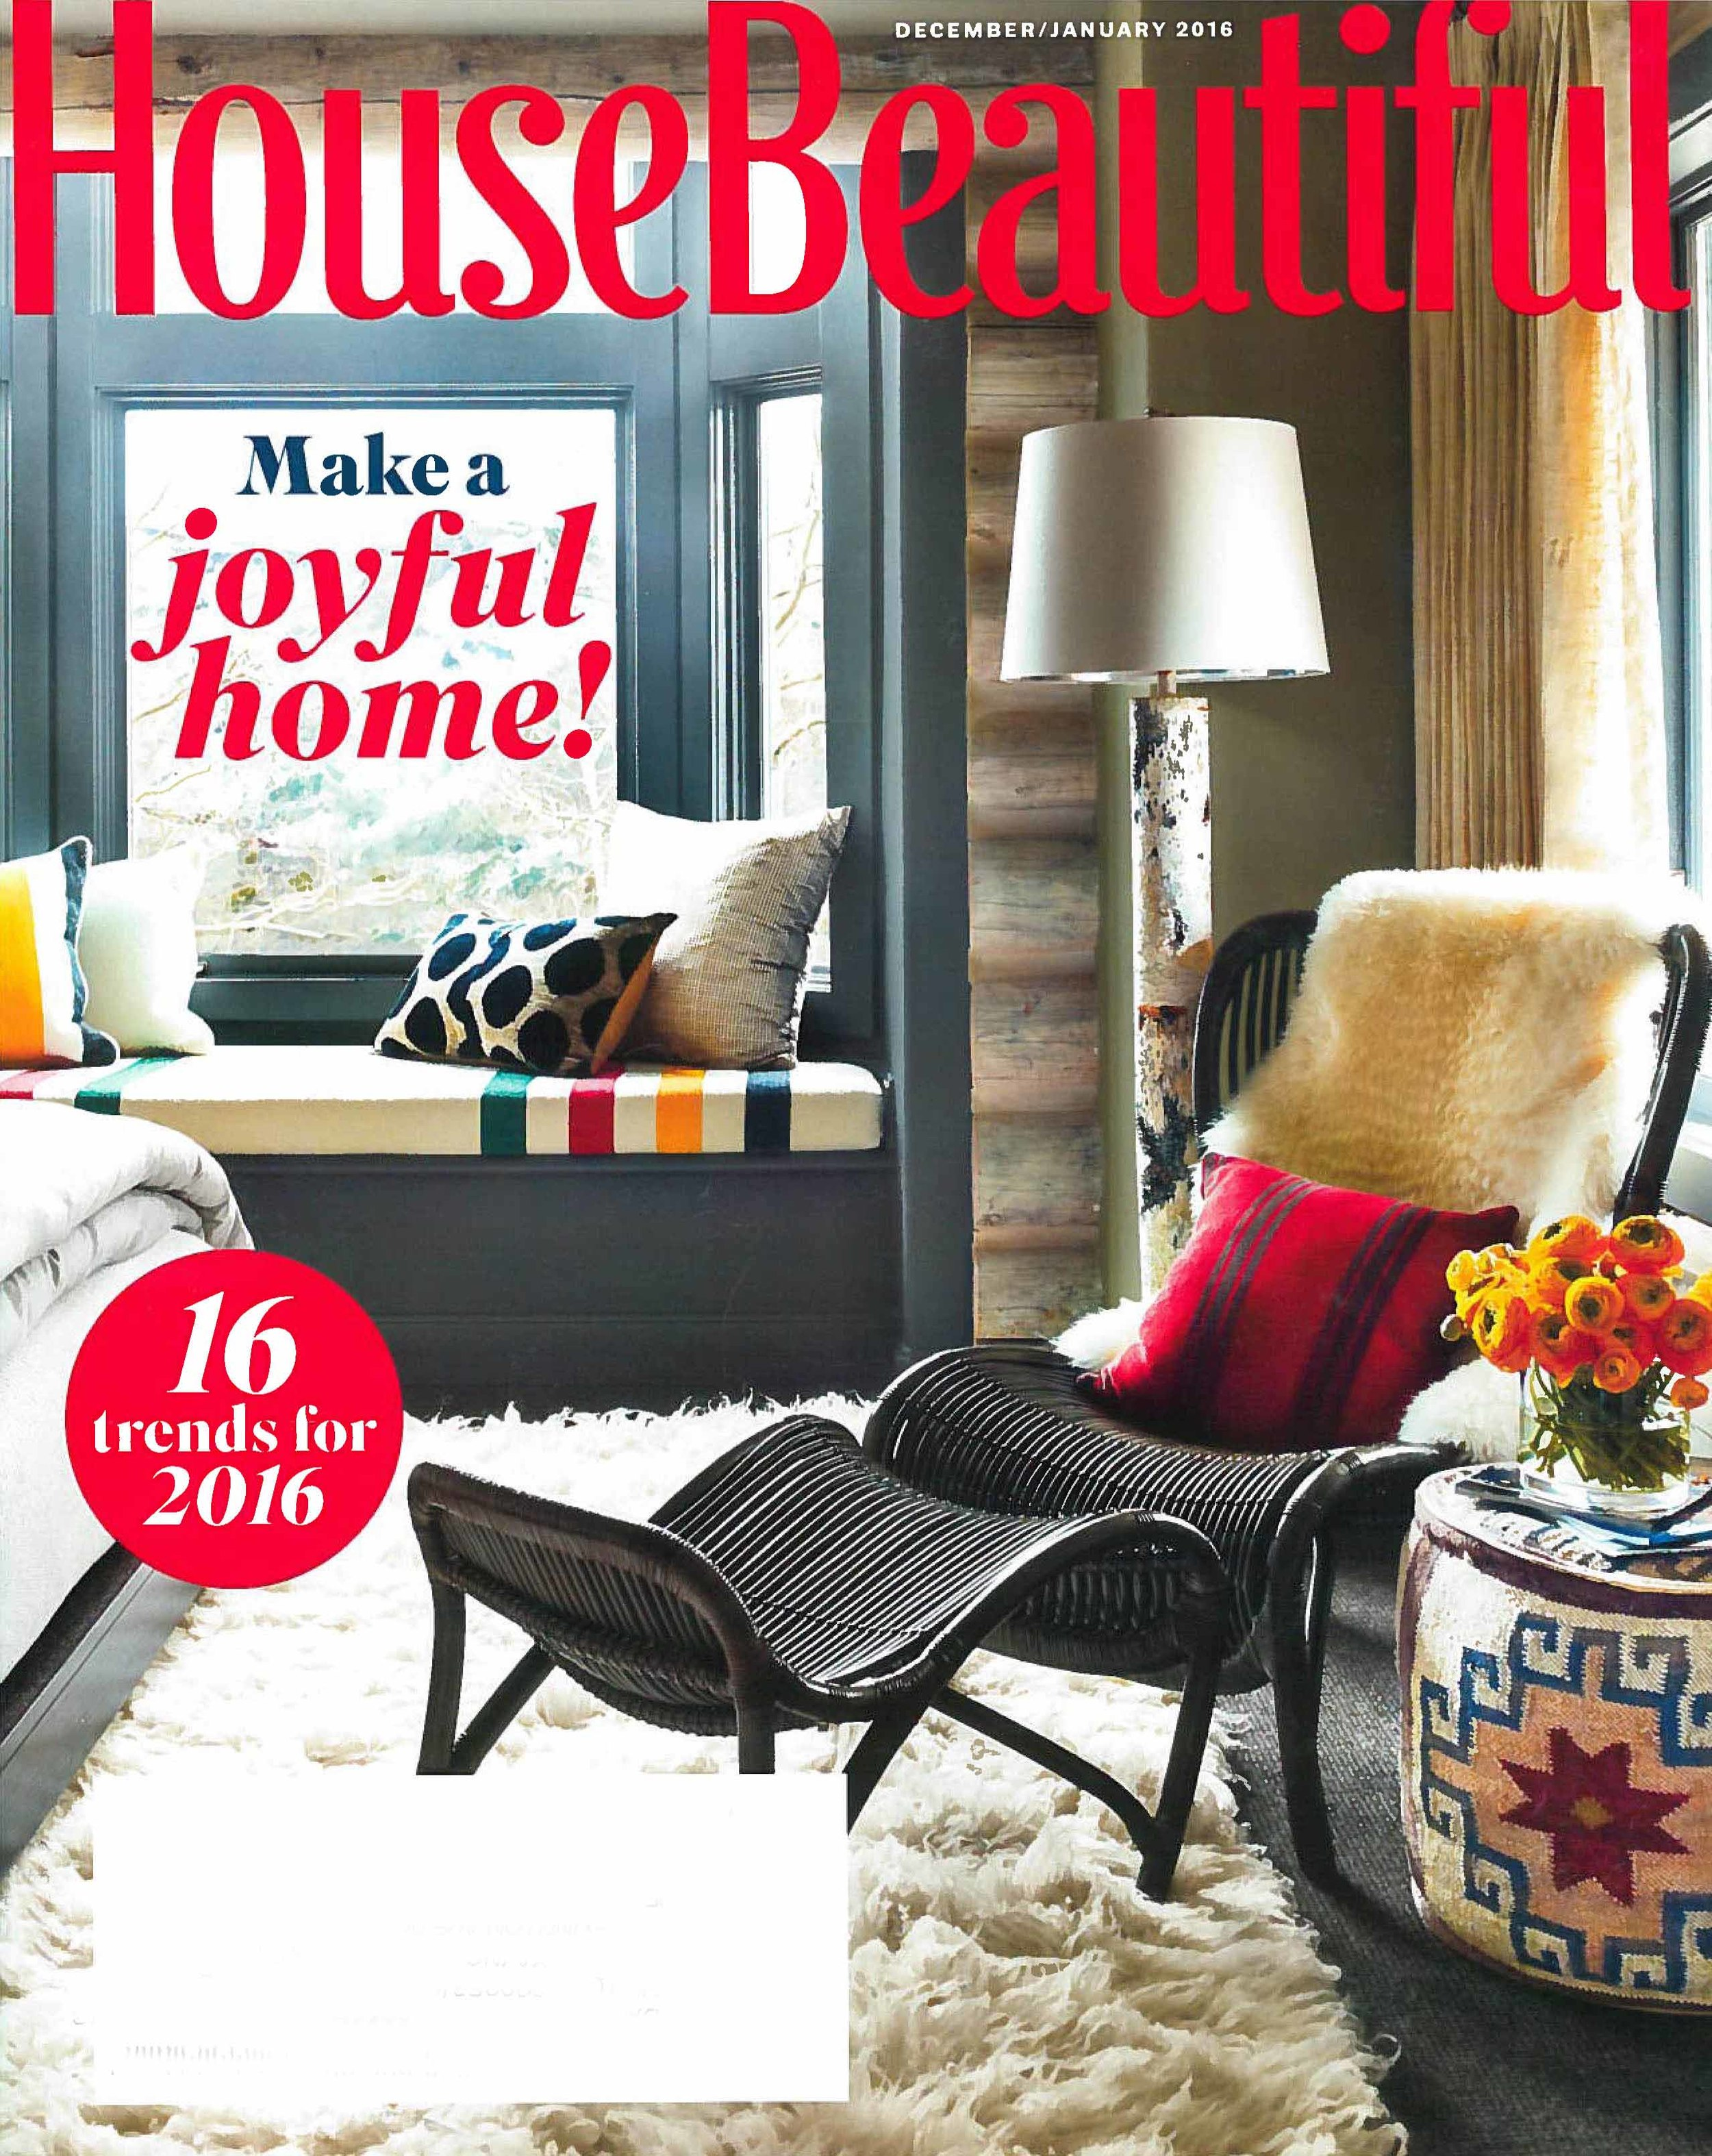 House Beautiful - Dec/Jan 2016